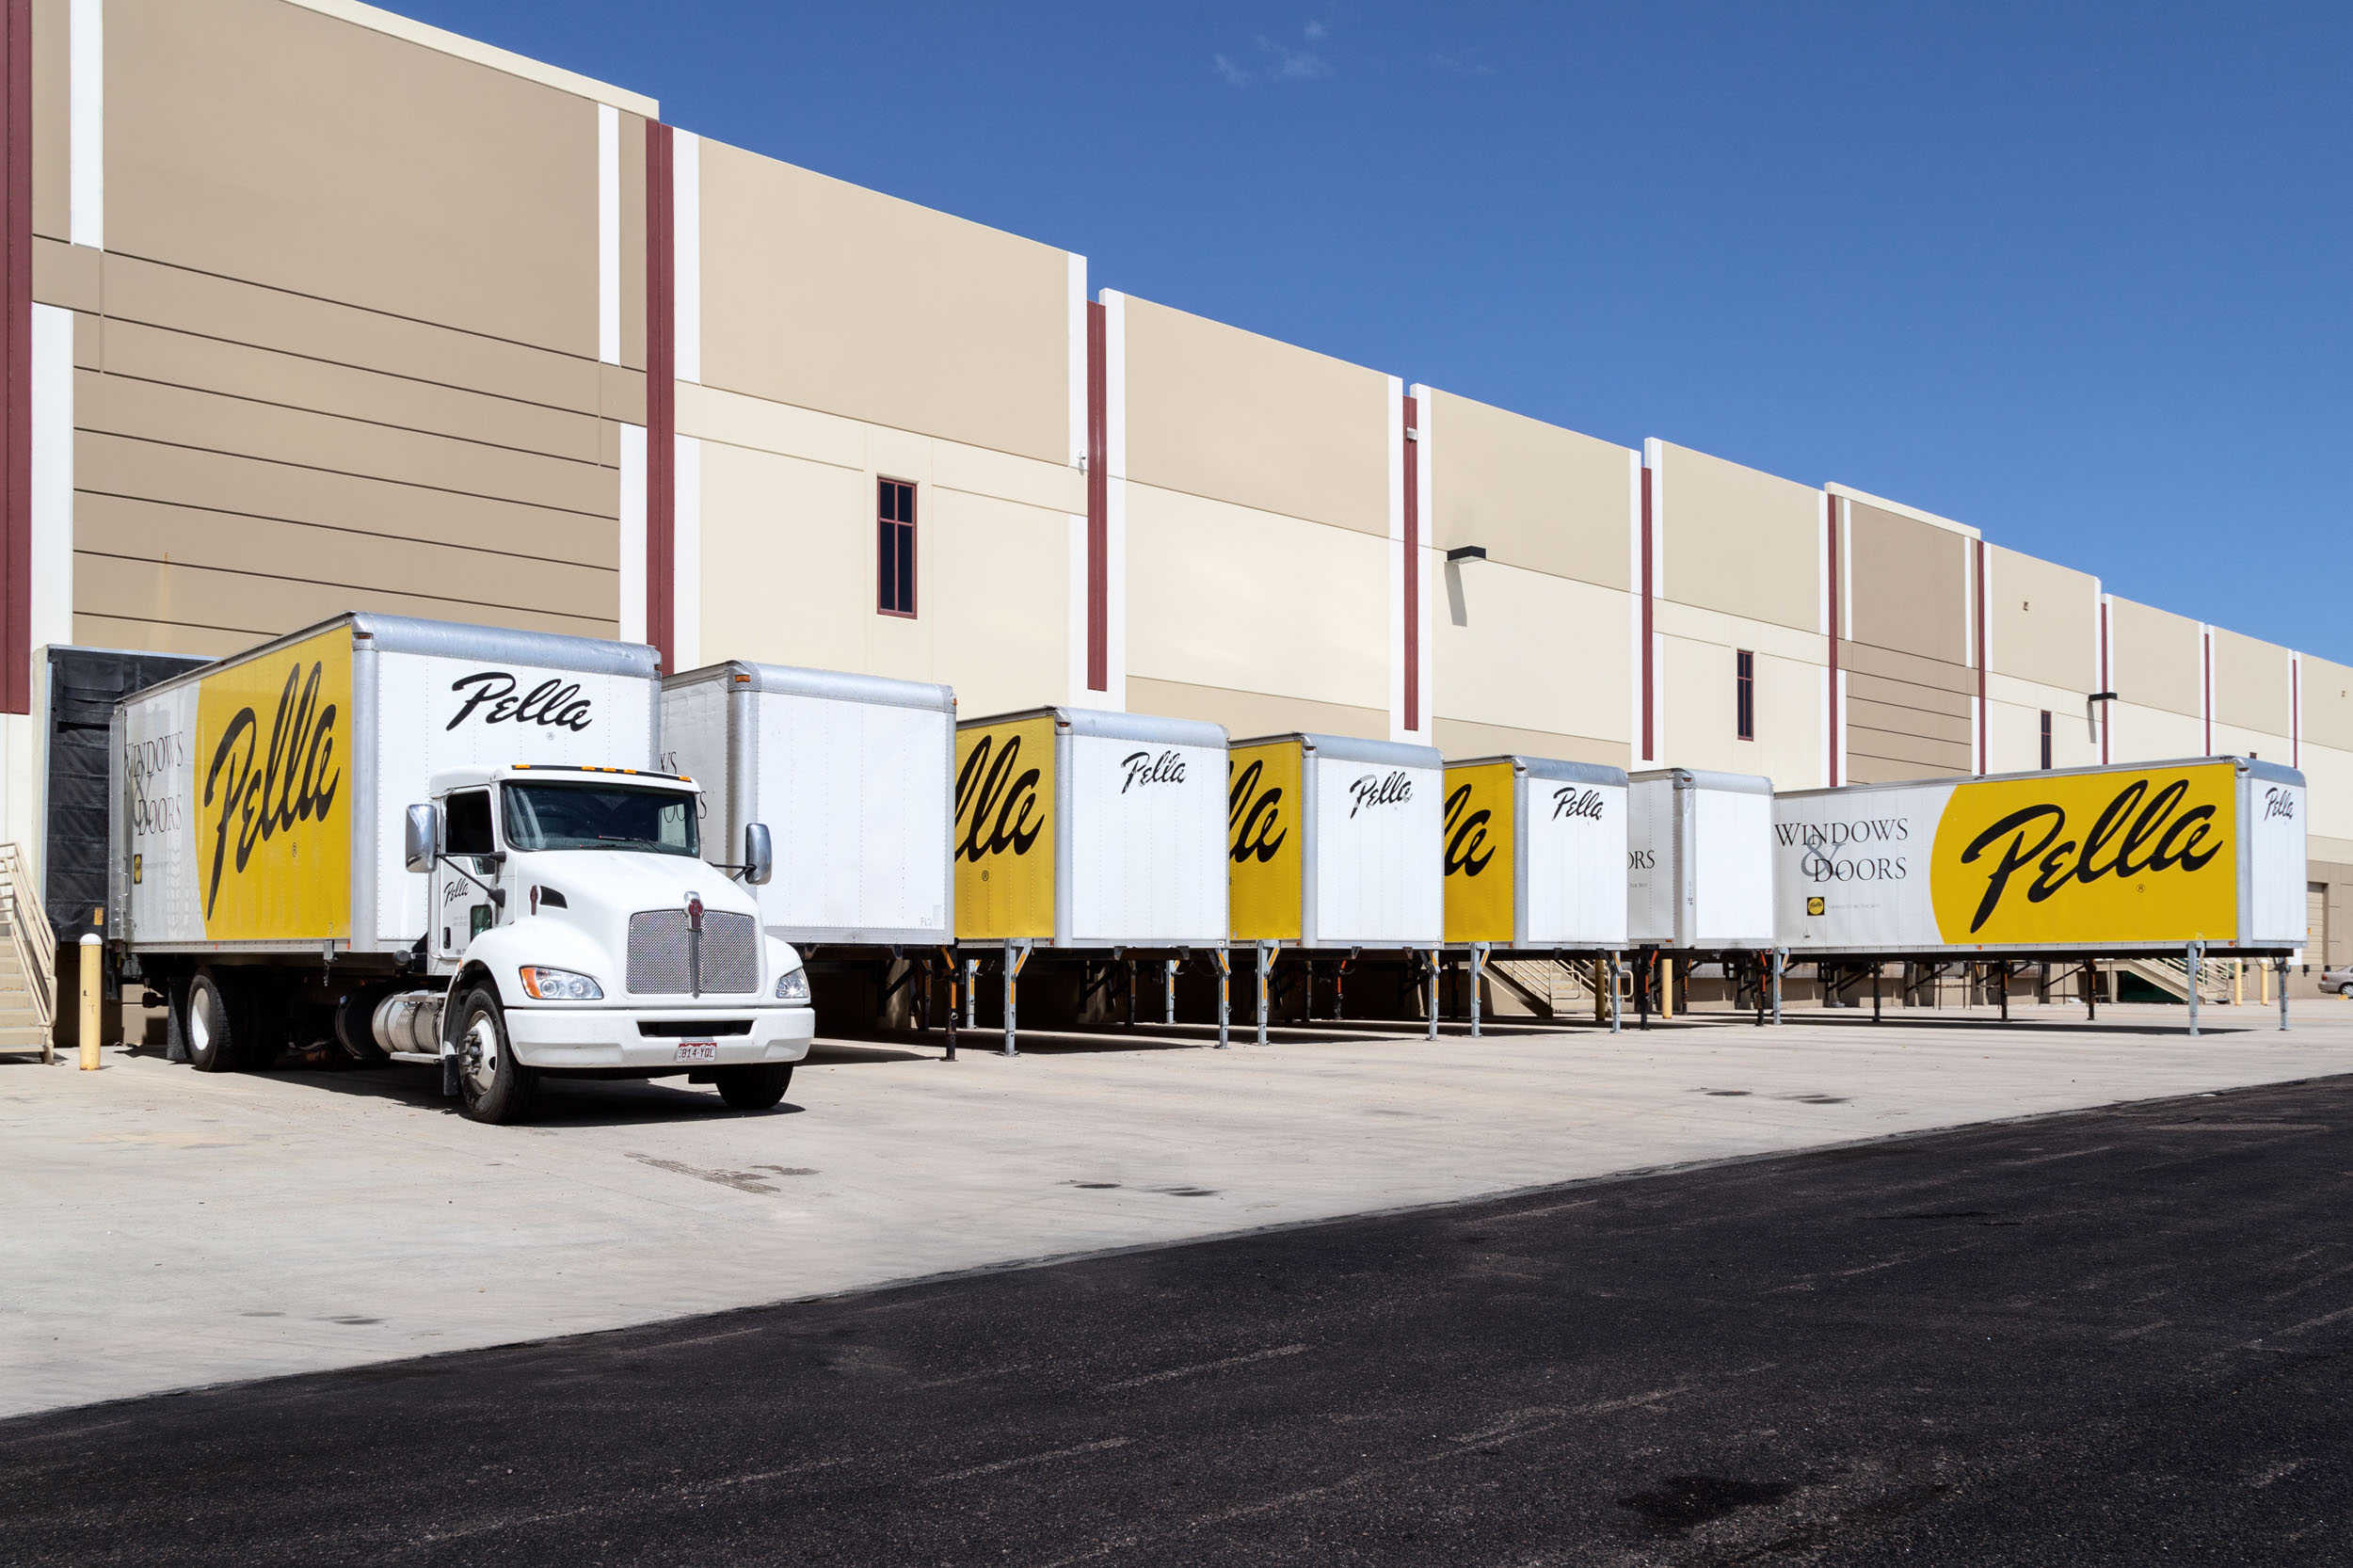 Swap Body Containers standing at a loading dock.